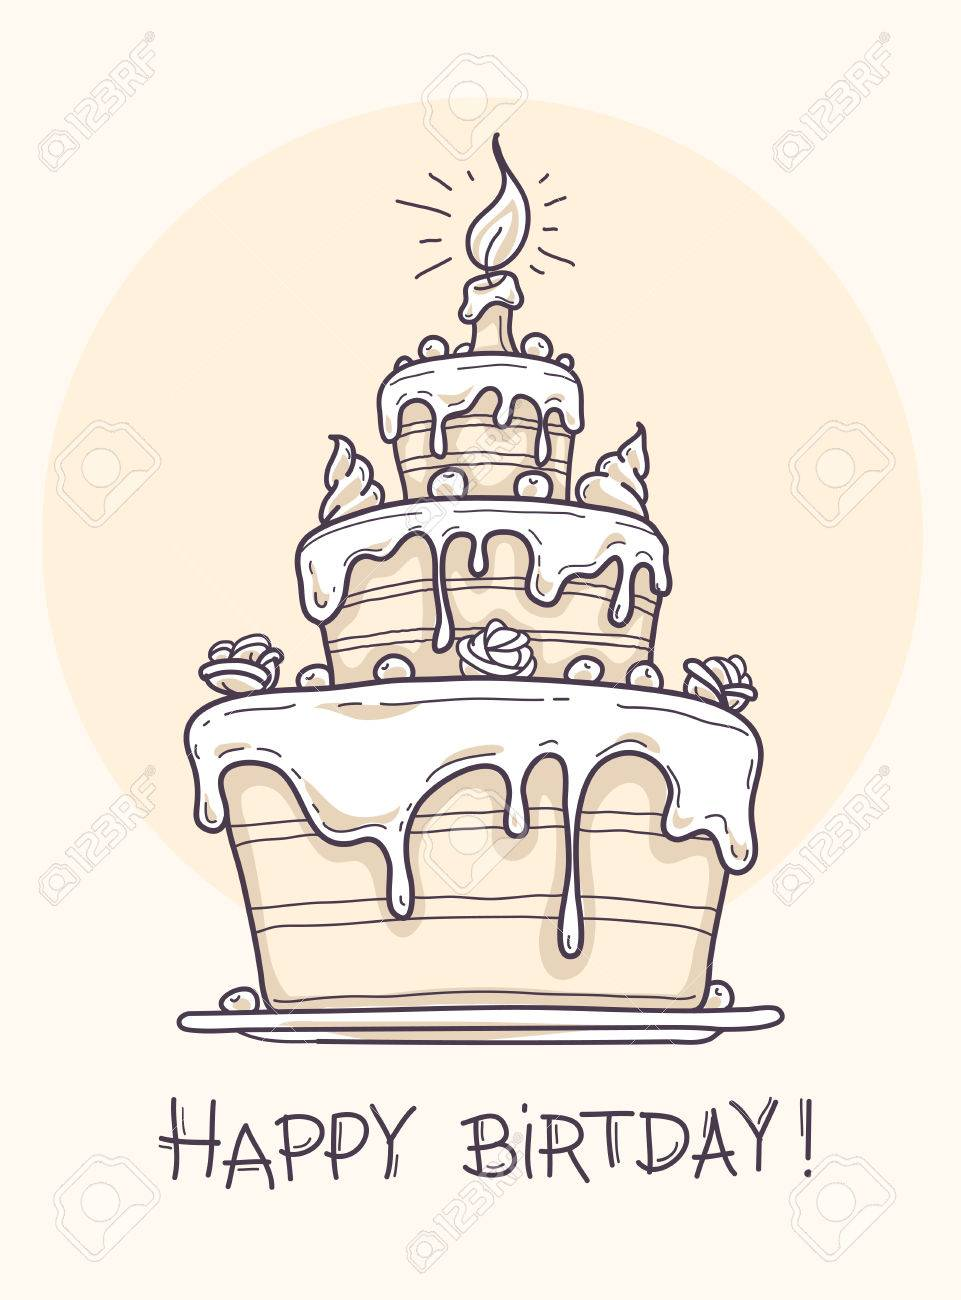 drawings for a birthday ; 52450947-greeting-card-with-big-birthday-cake-contour-drawing-vector-illustration